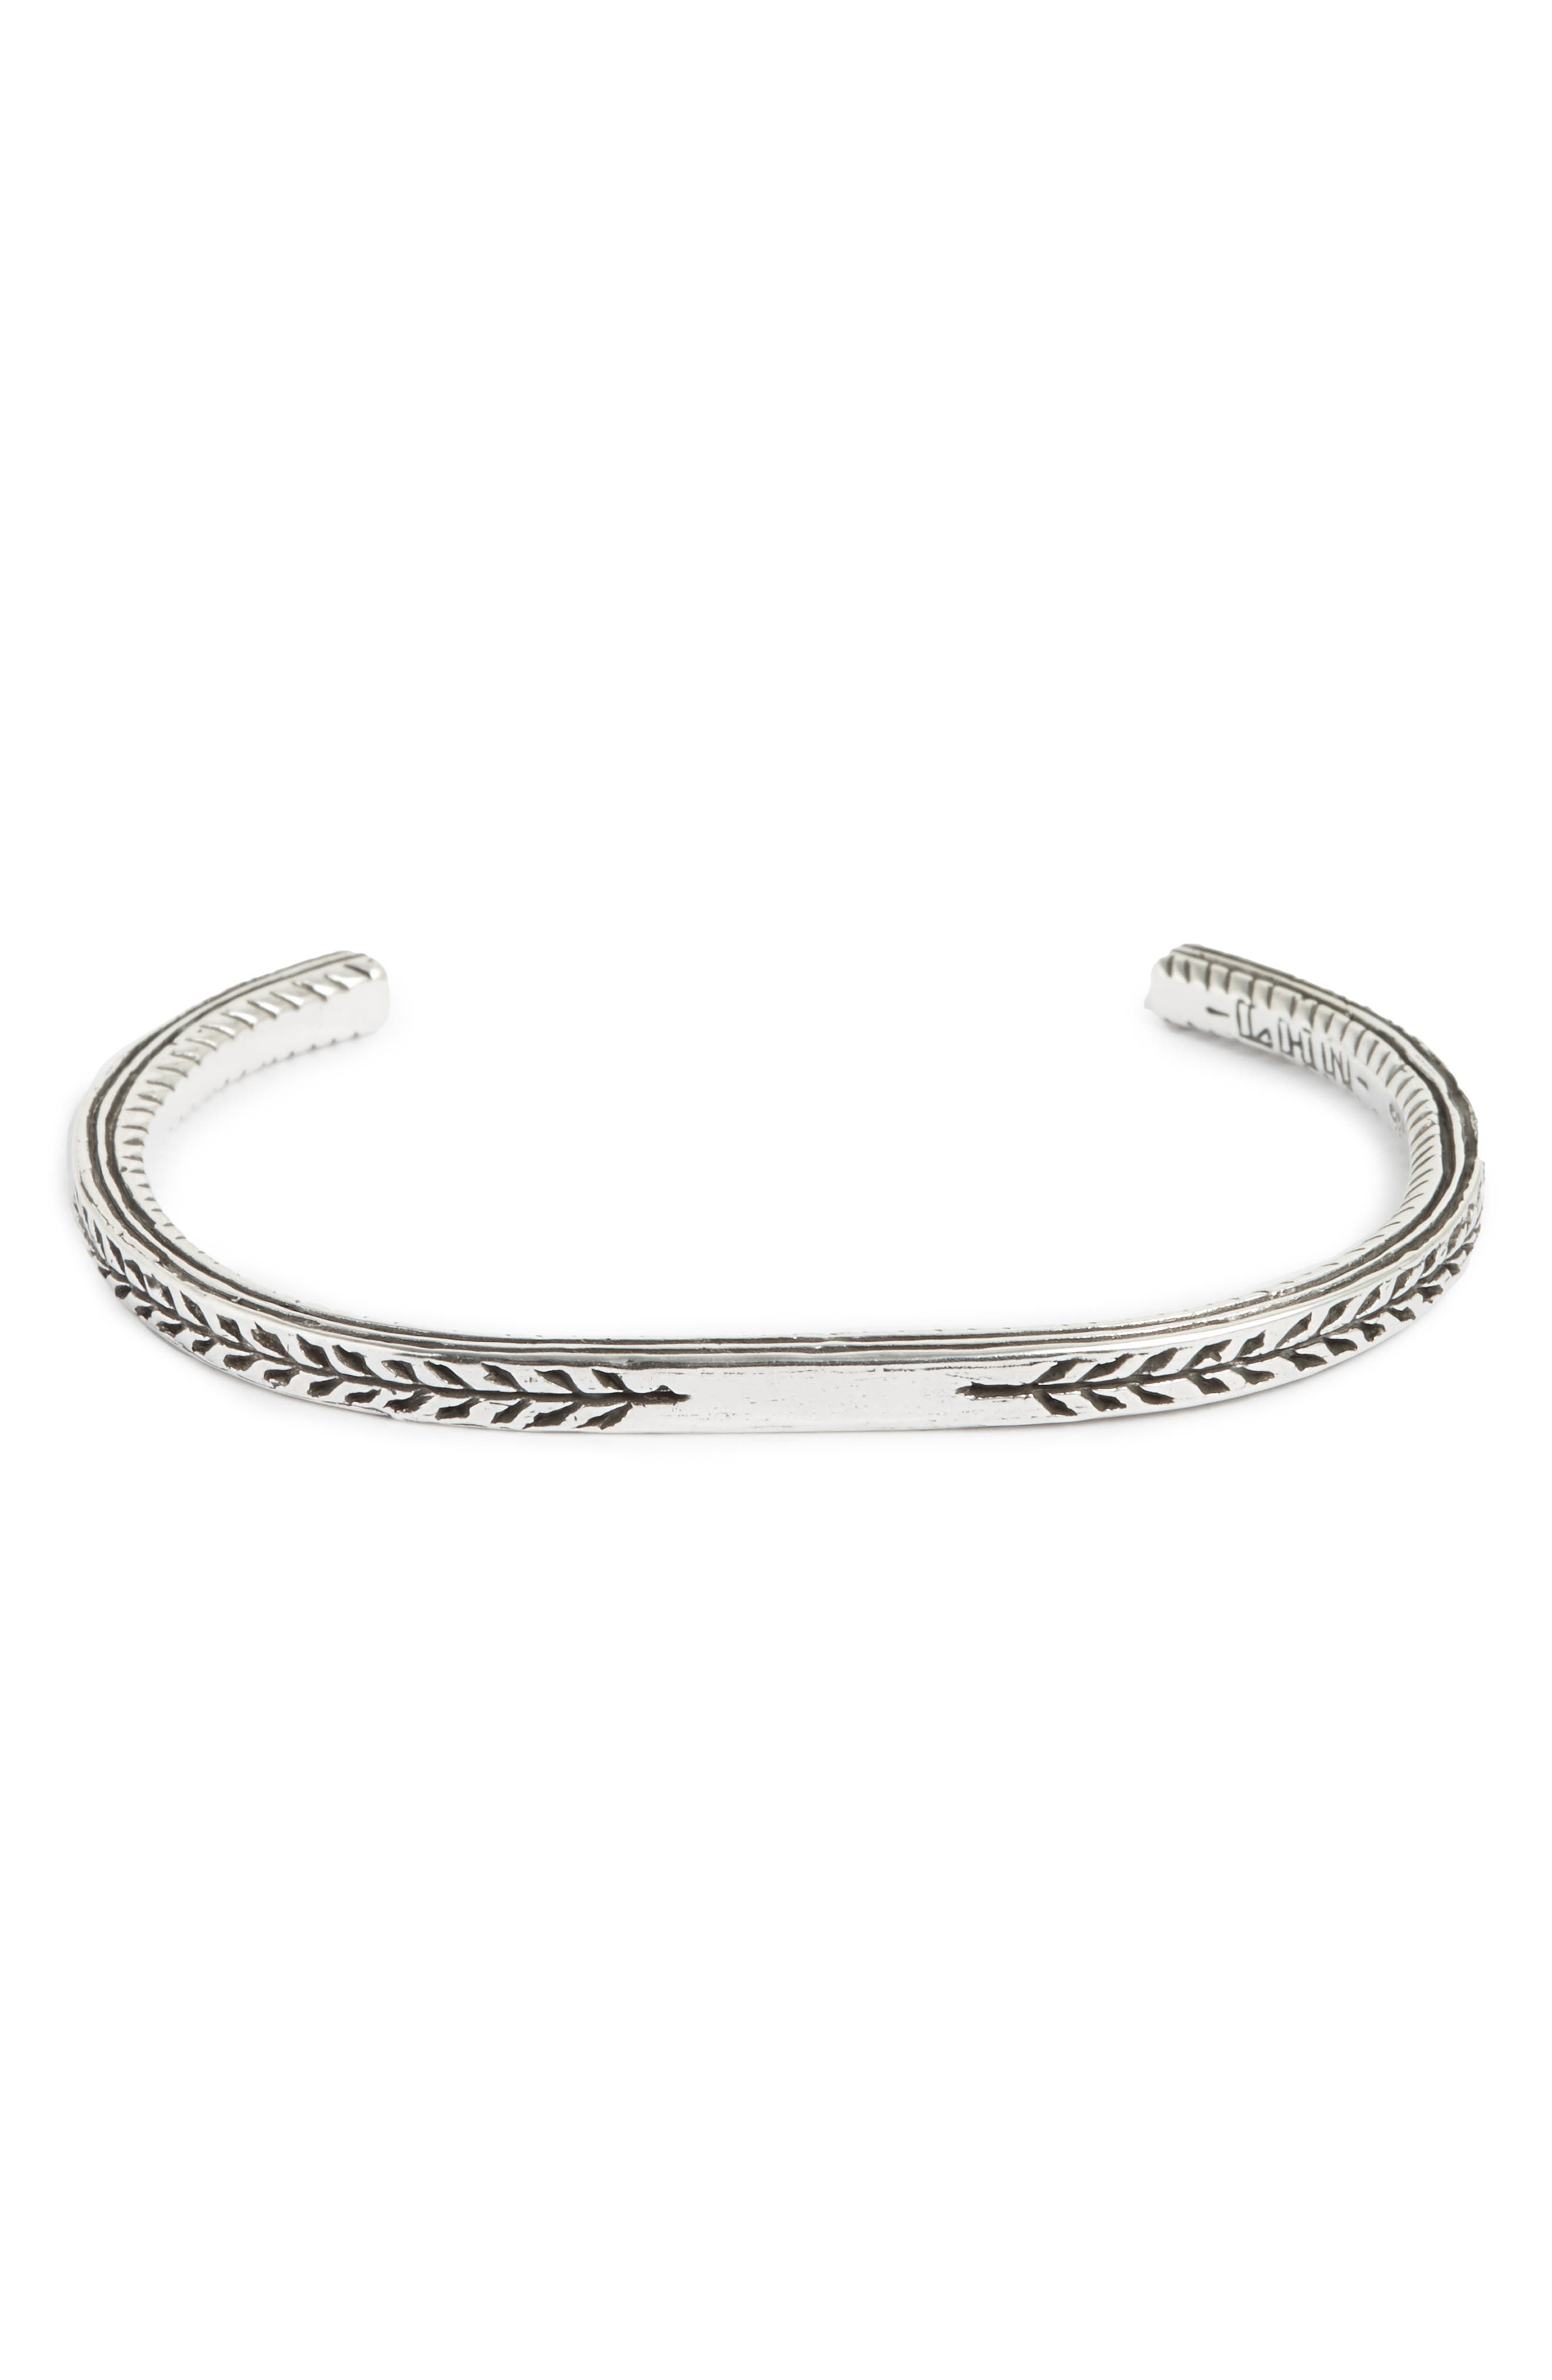 Pantheon Sterling Silver Cuff Bracelet,                             Main thumbnail 1, color,                             Silver